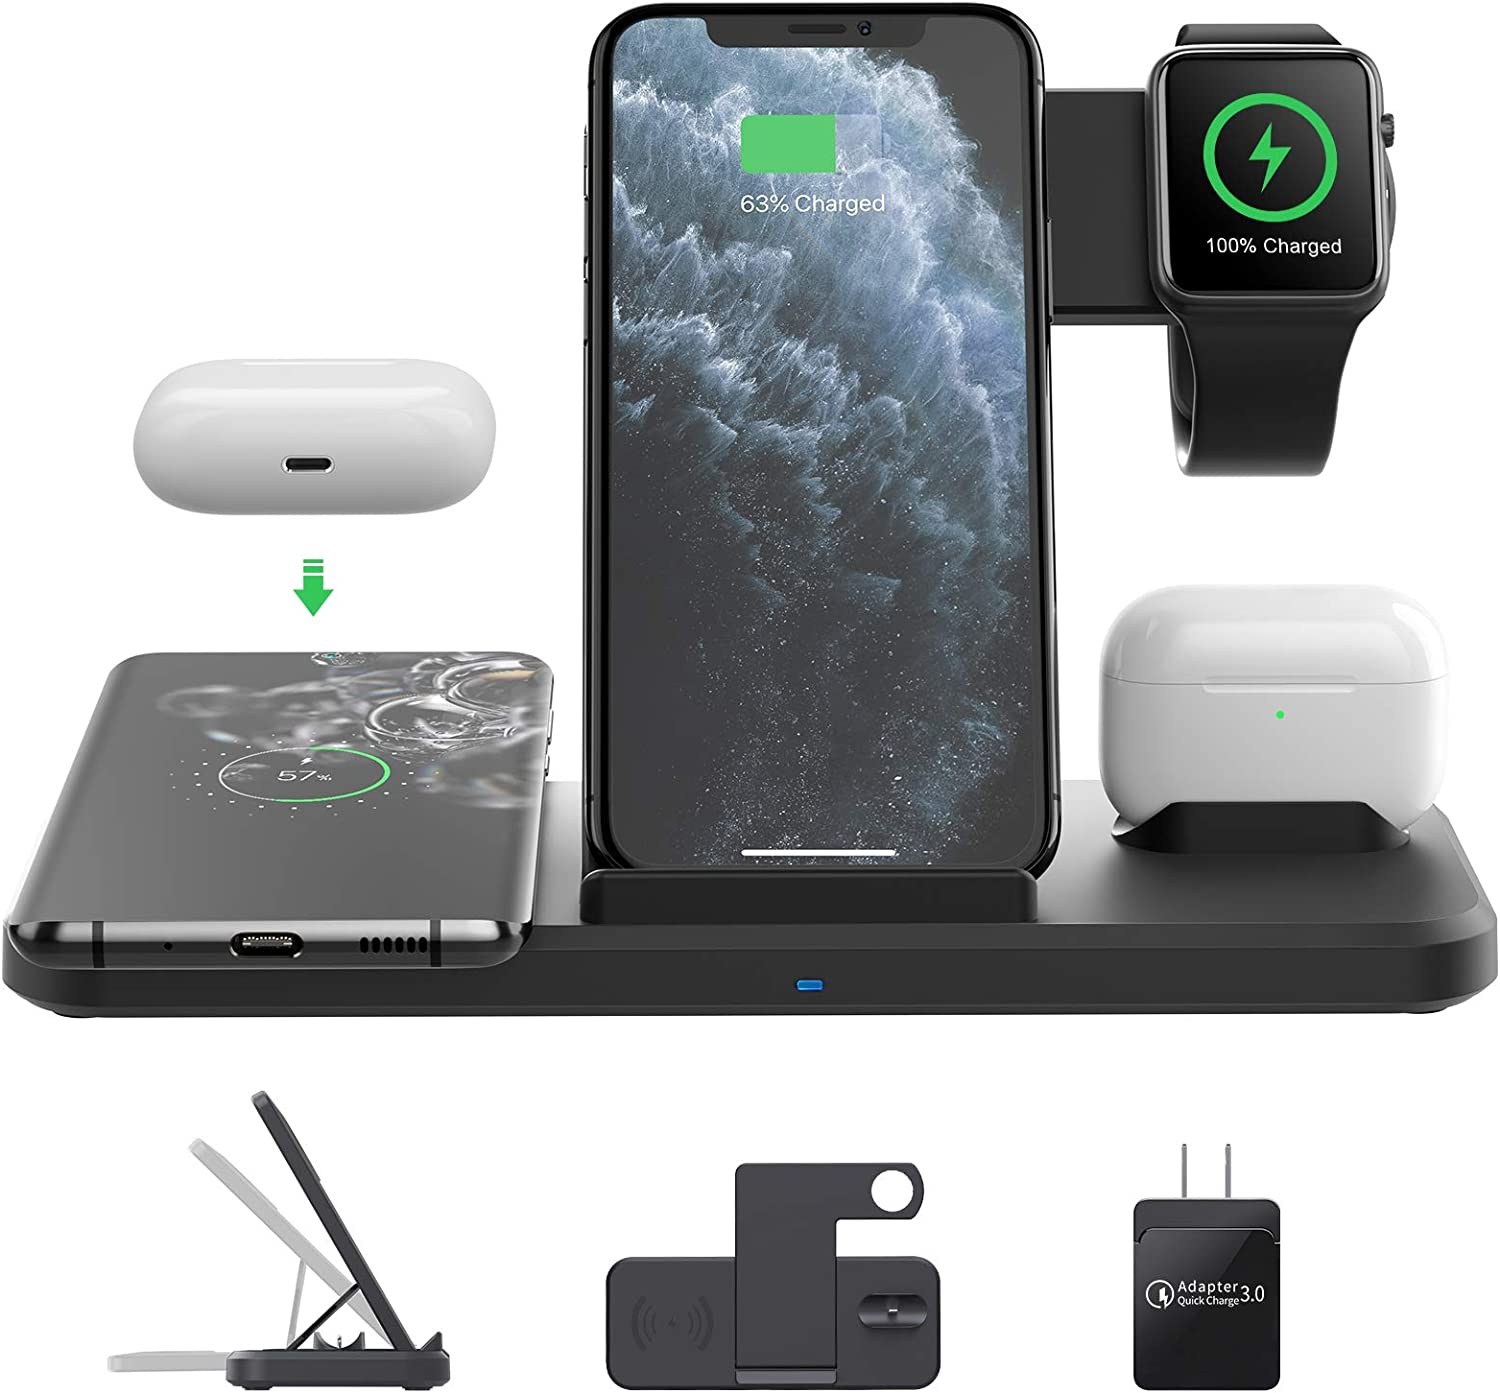 Wireless Charging Station with QC 3.0 Adapter(18 W), 4 in 1 Fast Wireless Charger Compatible with Apple Watch/Airpods,Wireless Charger Pad for iPhone 12 11 Pro/11/XS/XS Max/X/XR Samsung Android System